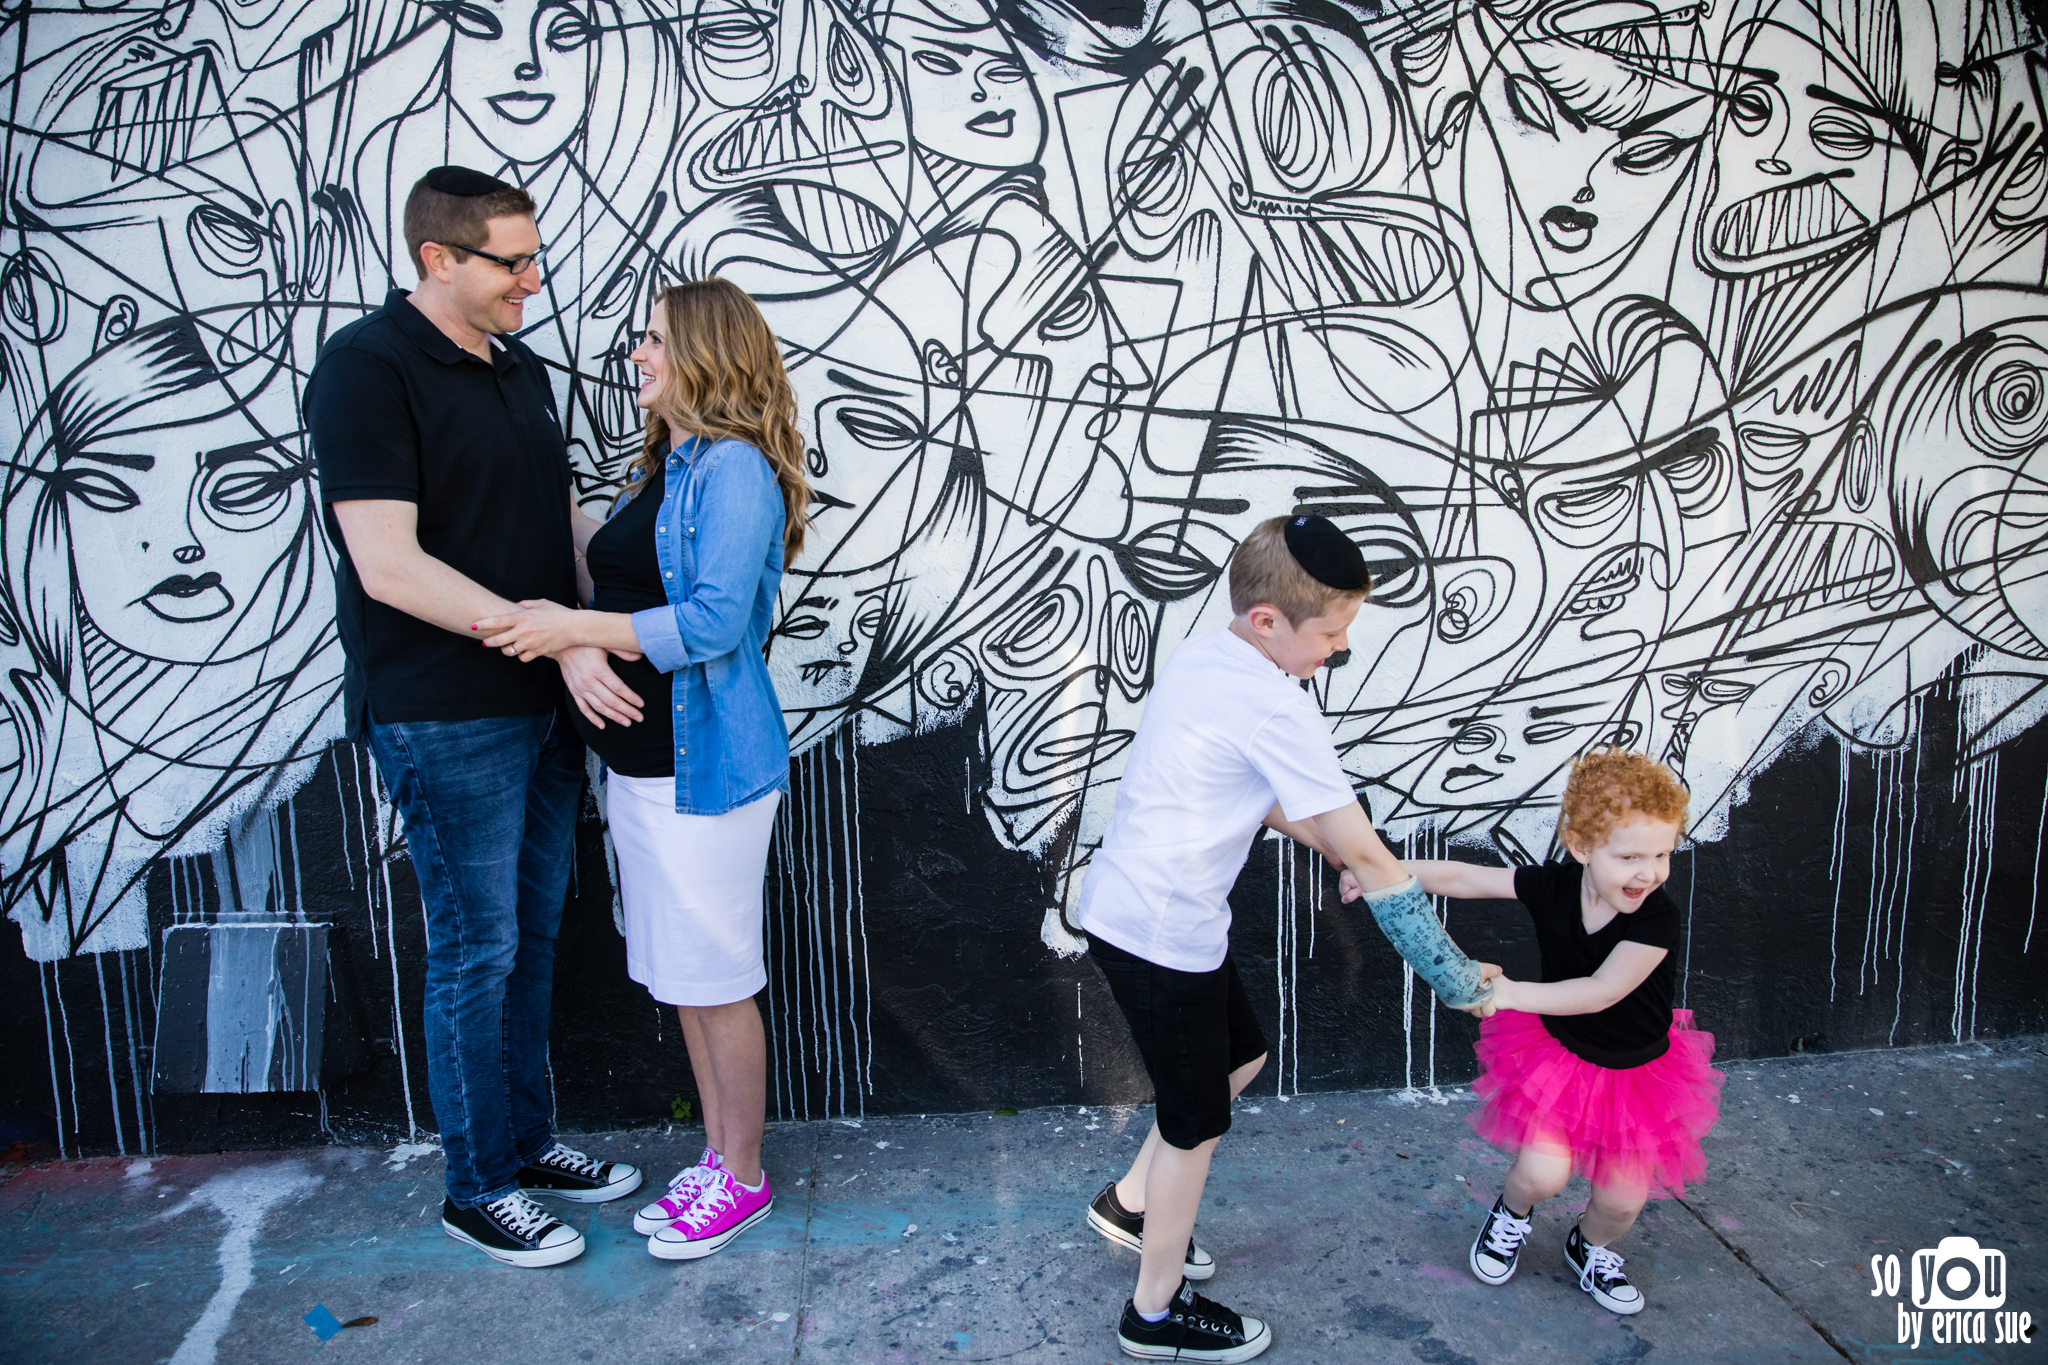 wynwood-family-photography-so-you-by-erica-sue-ft-lauderdale-davie-miami-fl-florida-2532.jpg